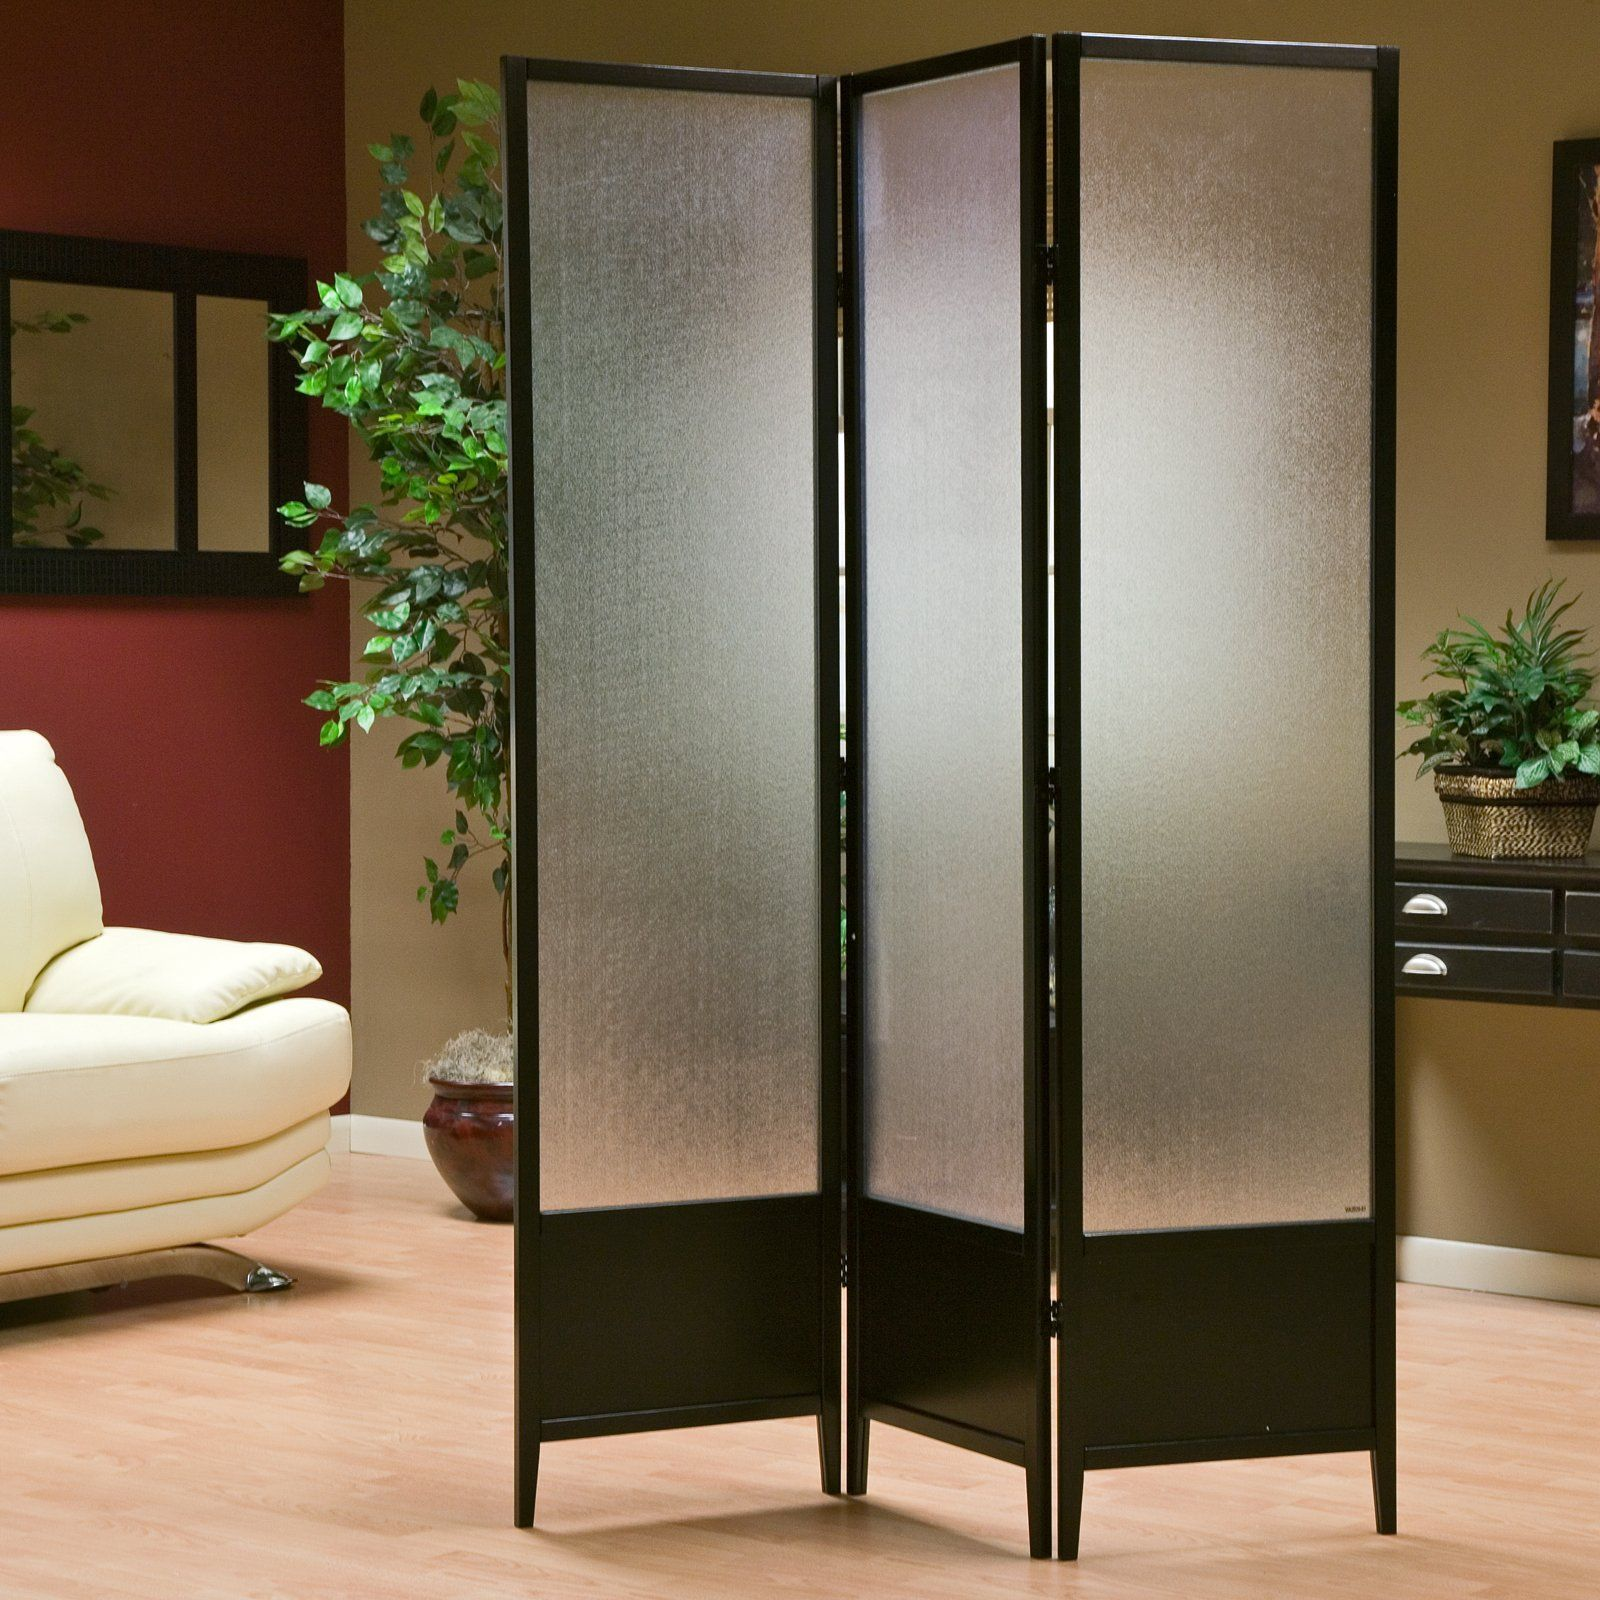 metal screen partitions in bathroom Yahoo Image Search Results